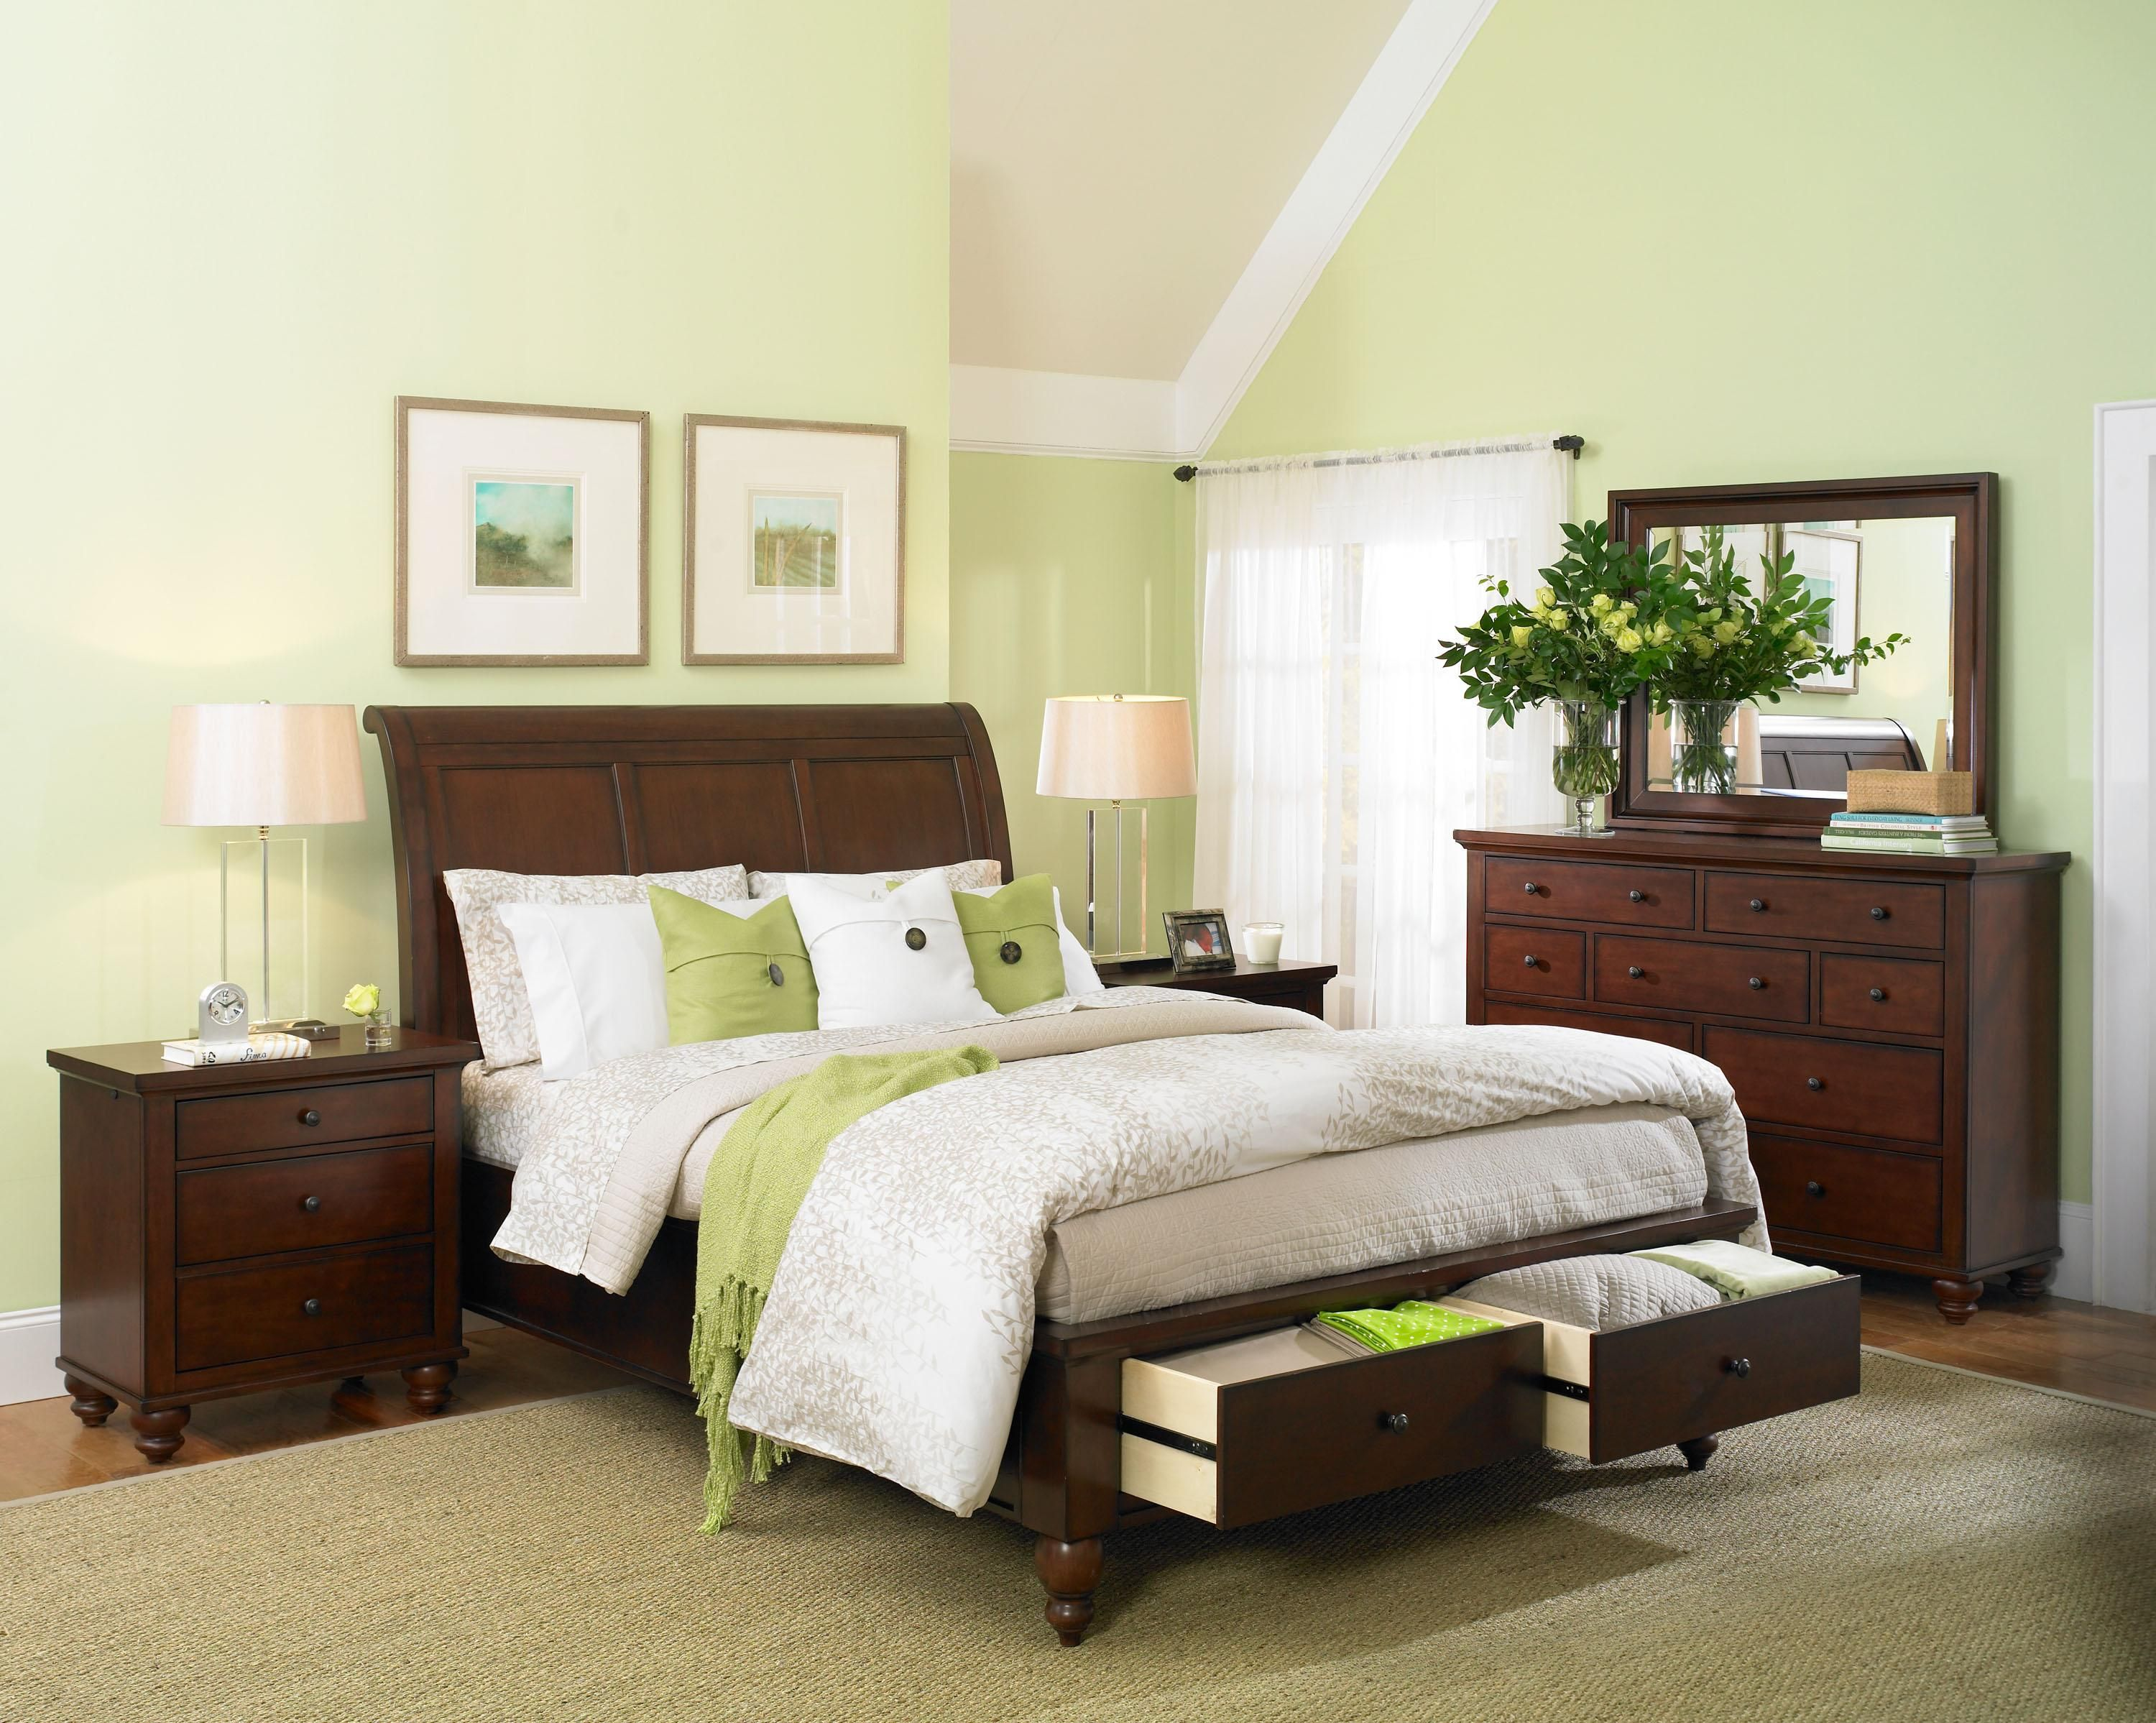 Aspen Furniture Cambridge Collection featuring a sleigh headboard